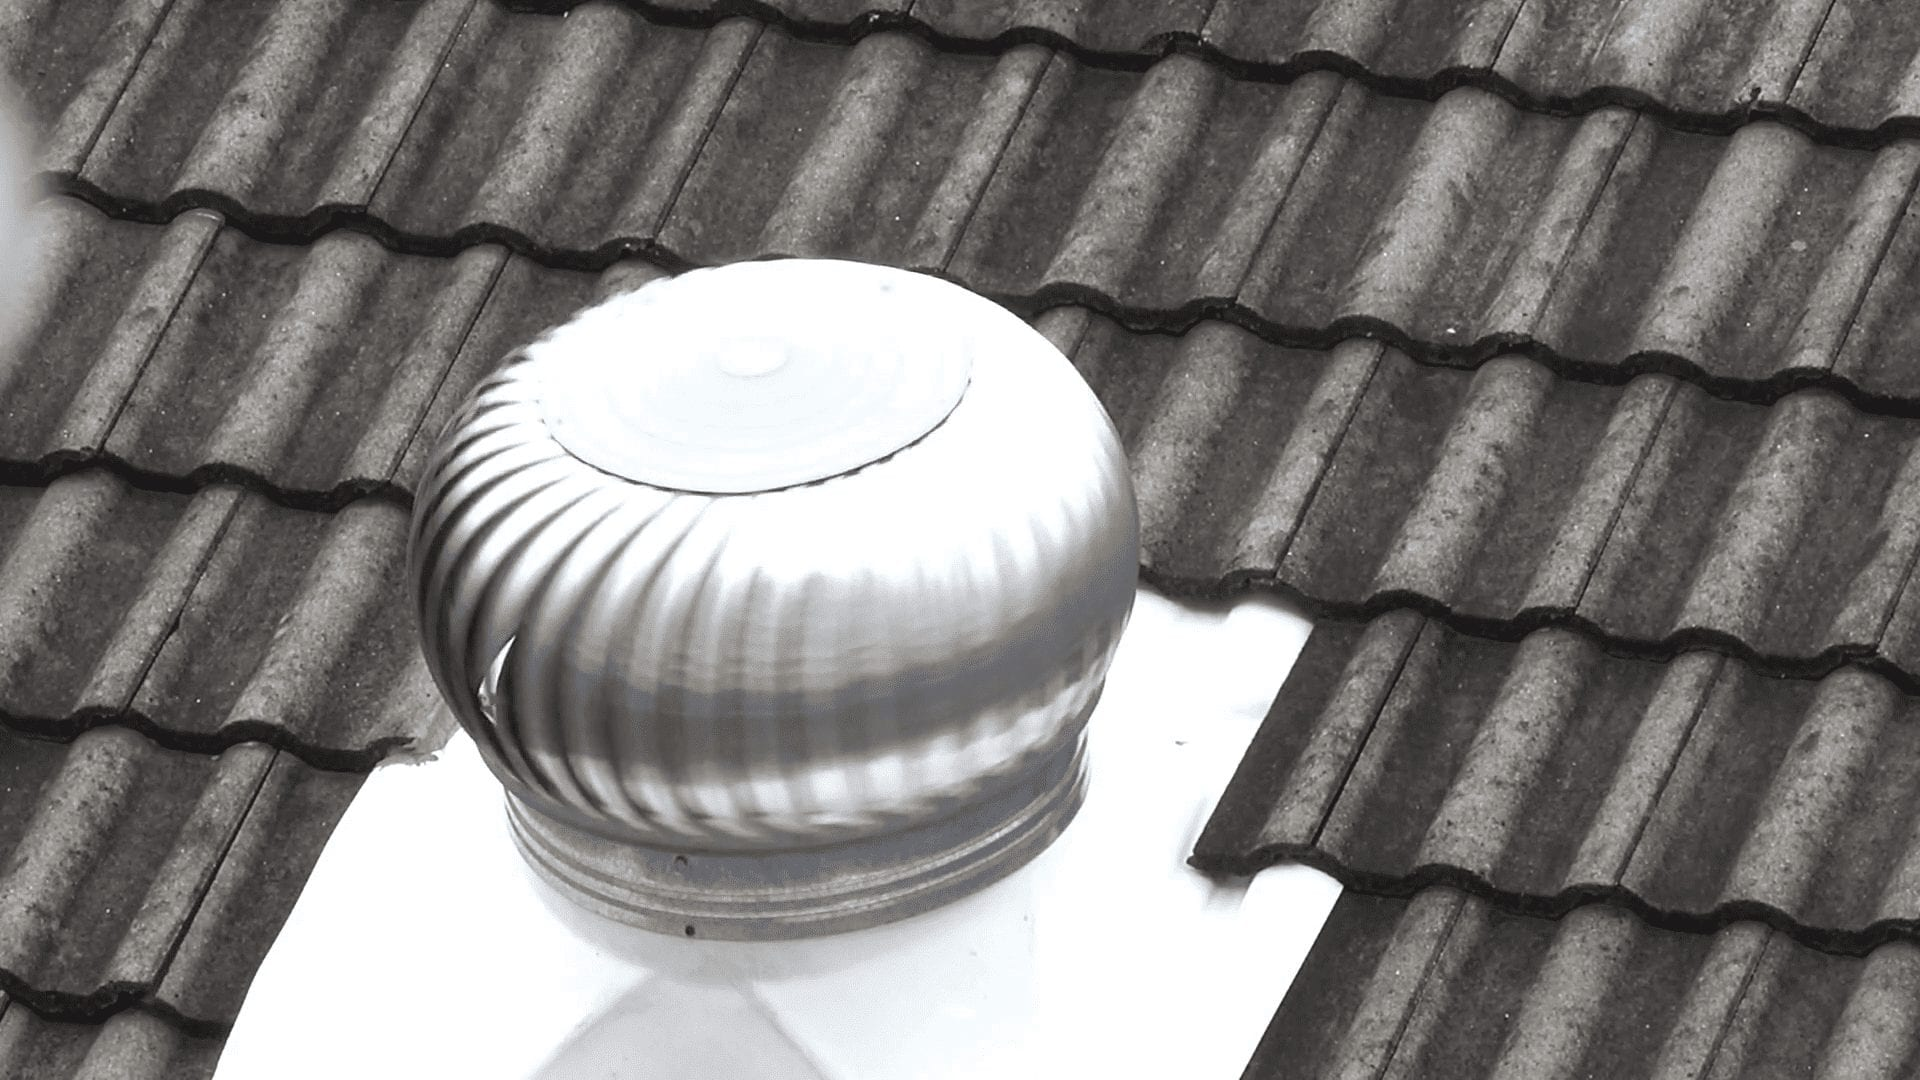 Should gable vents be closed in winter